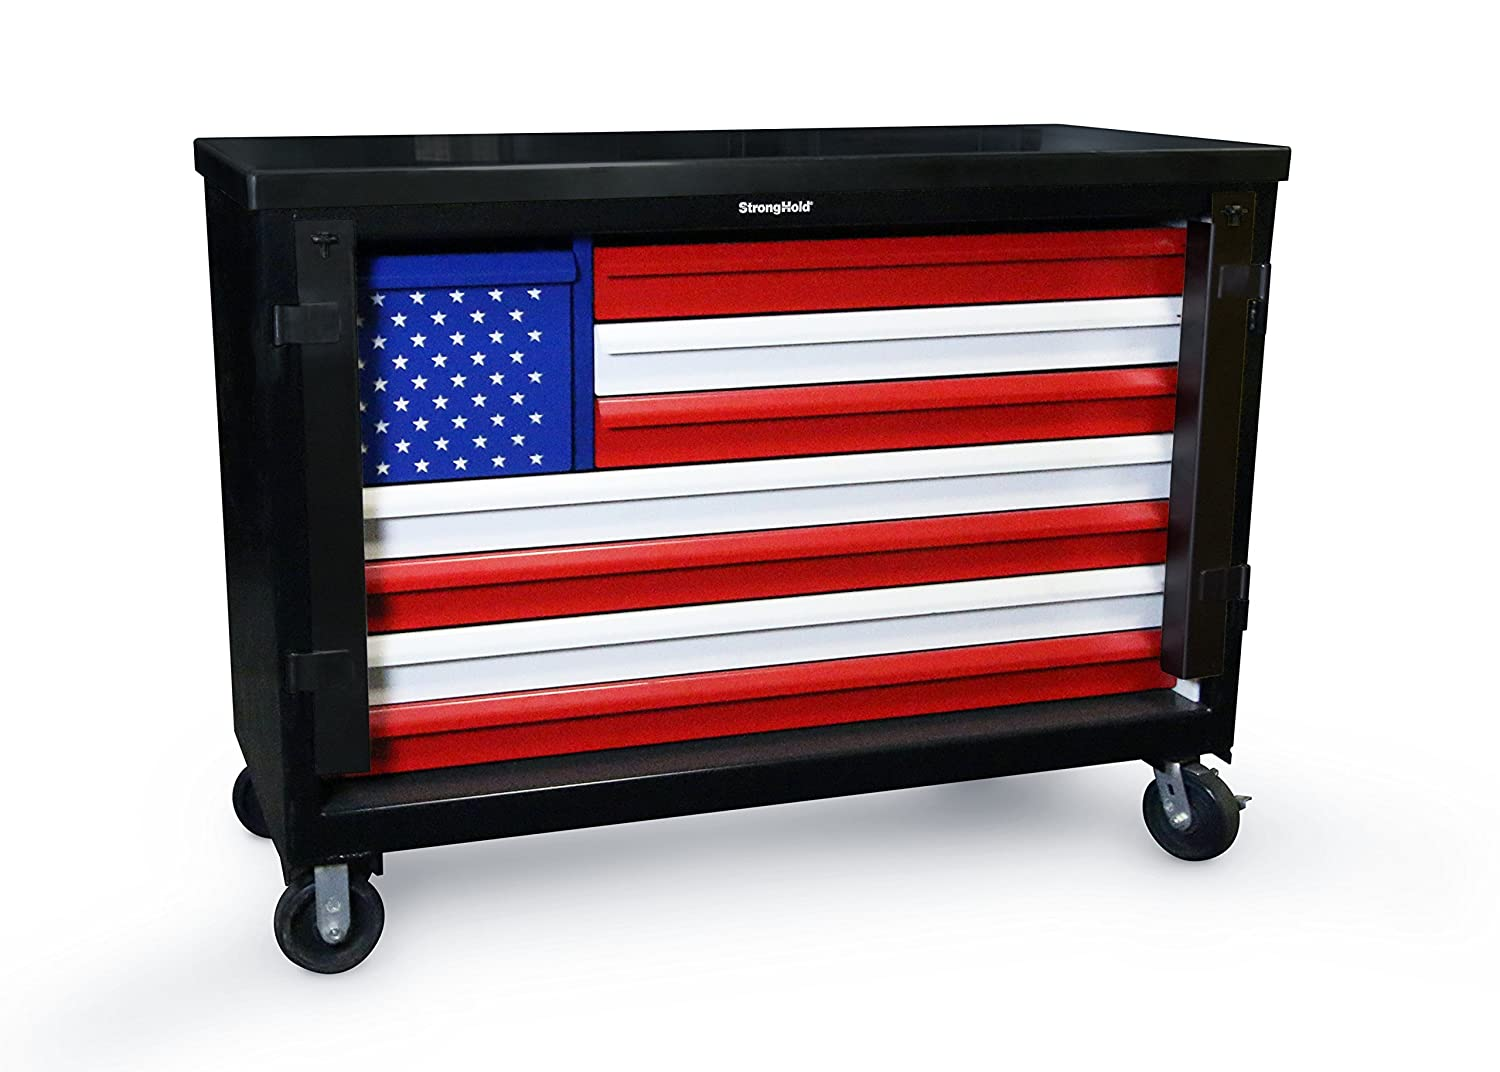 """Strong Hold, American Pride Special Edition, 60"""" W, 8 Drawer Heavy-Duty Rolling Tool Box/Cart, 400 lbs. Capacity Drawers, 12 Gauge Steel Top, TC-21061"""